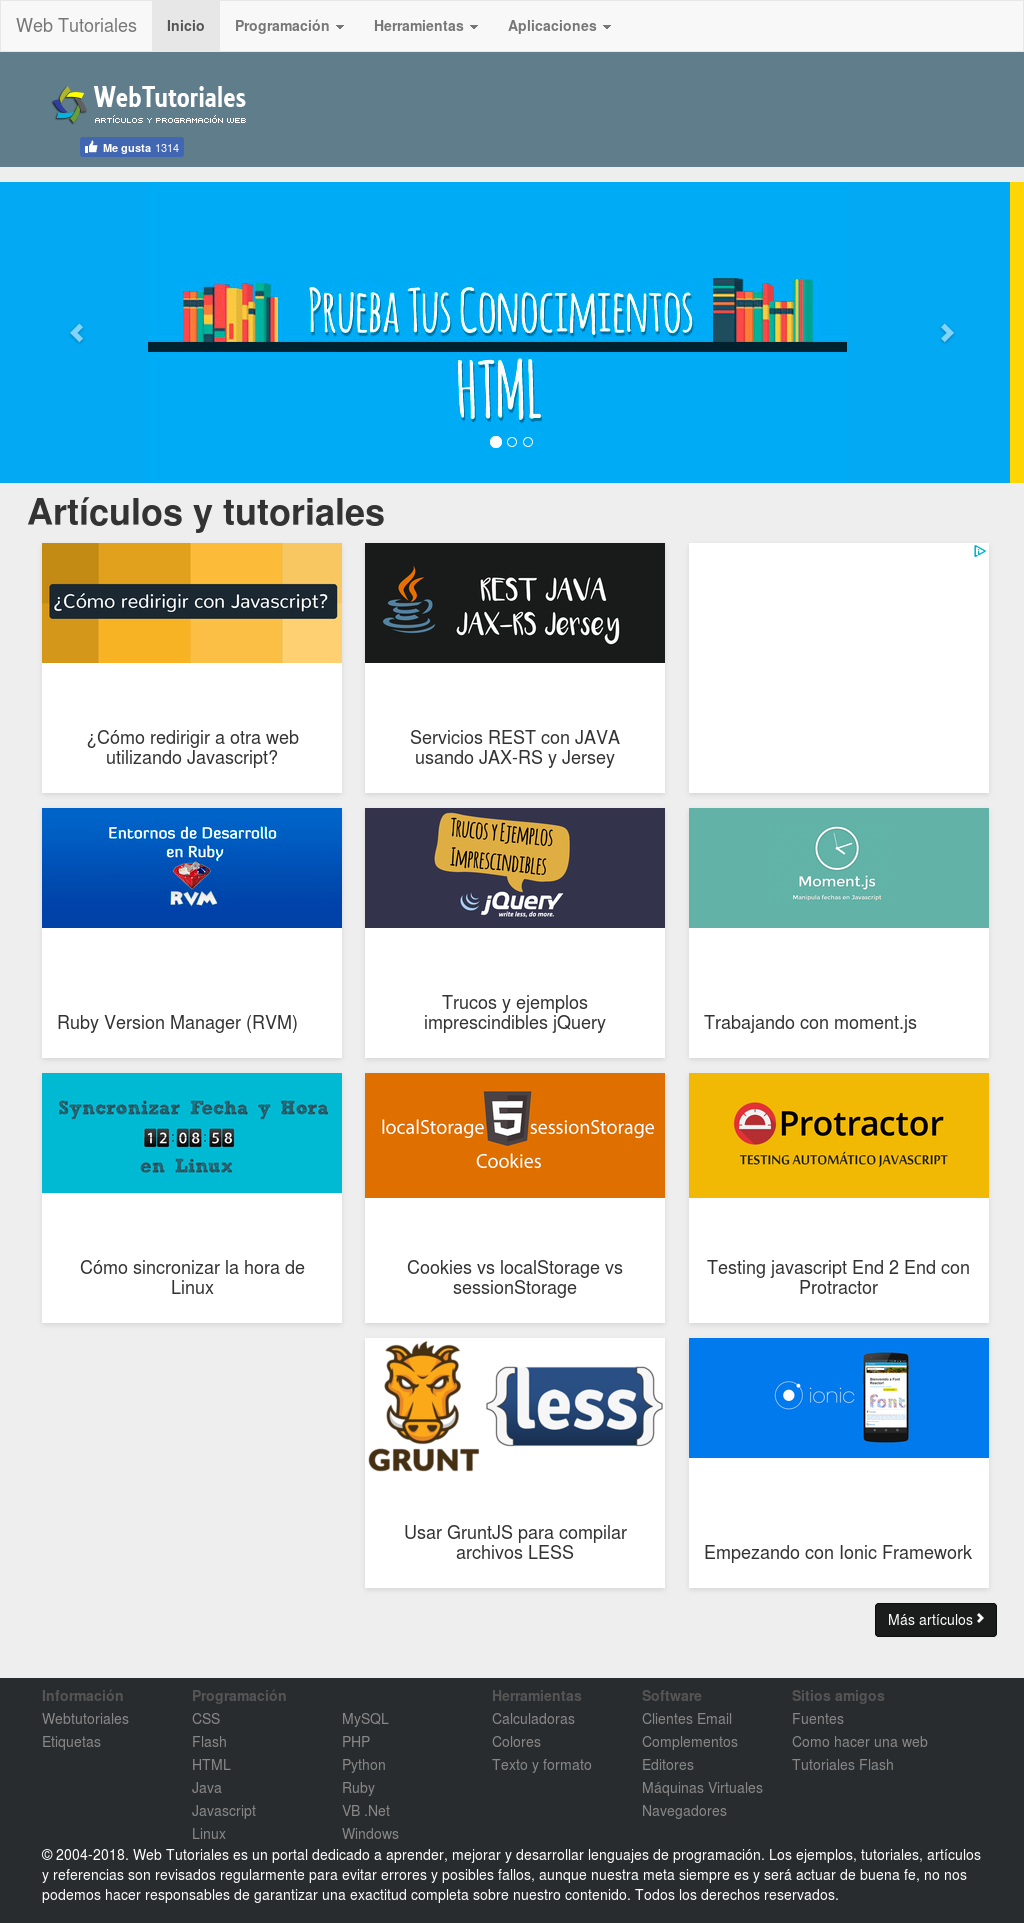 Web Tutoriales Competitors, Revenue and Employees - Owler Company